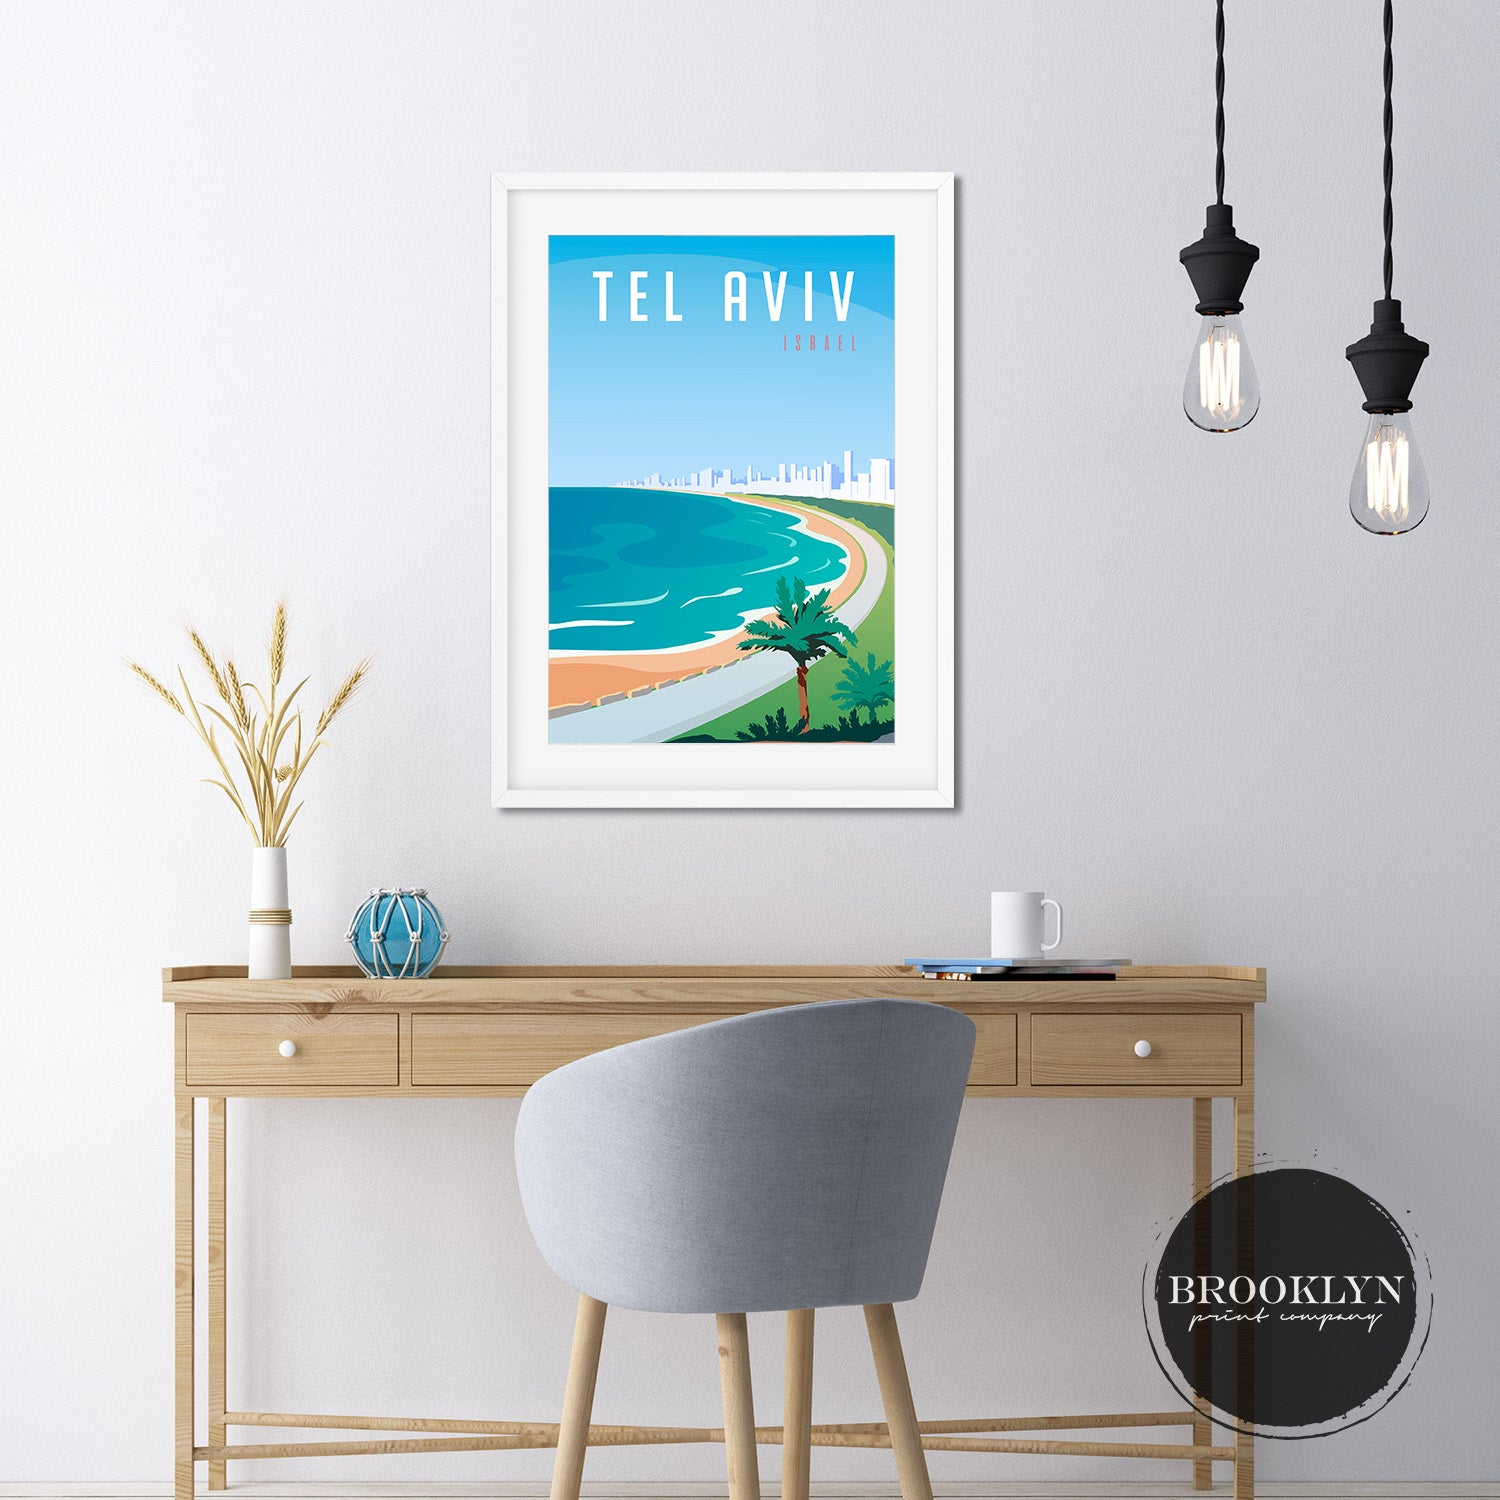 Tel Aviv City Skyline Travel Poster Art Print - VIVIDEDITIONS